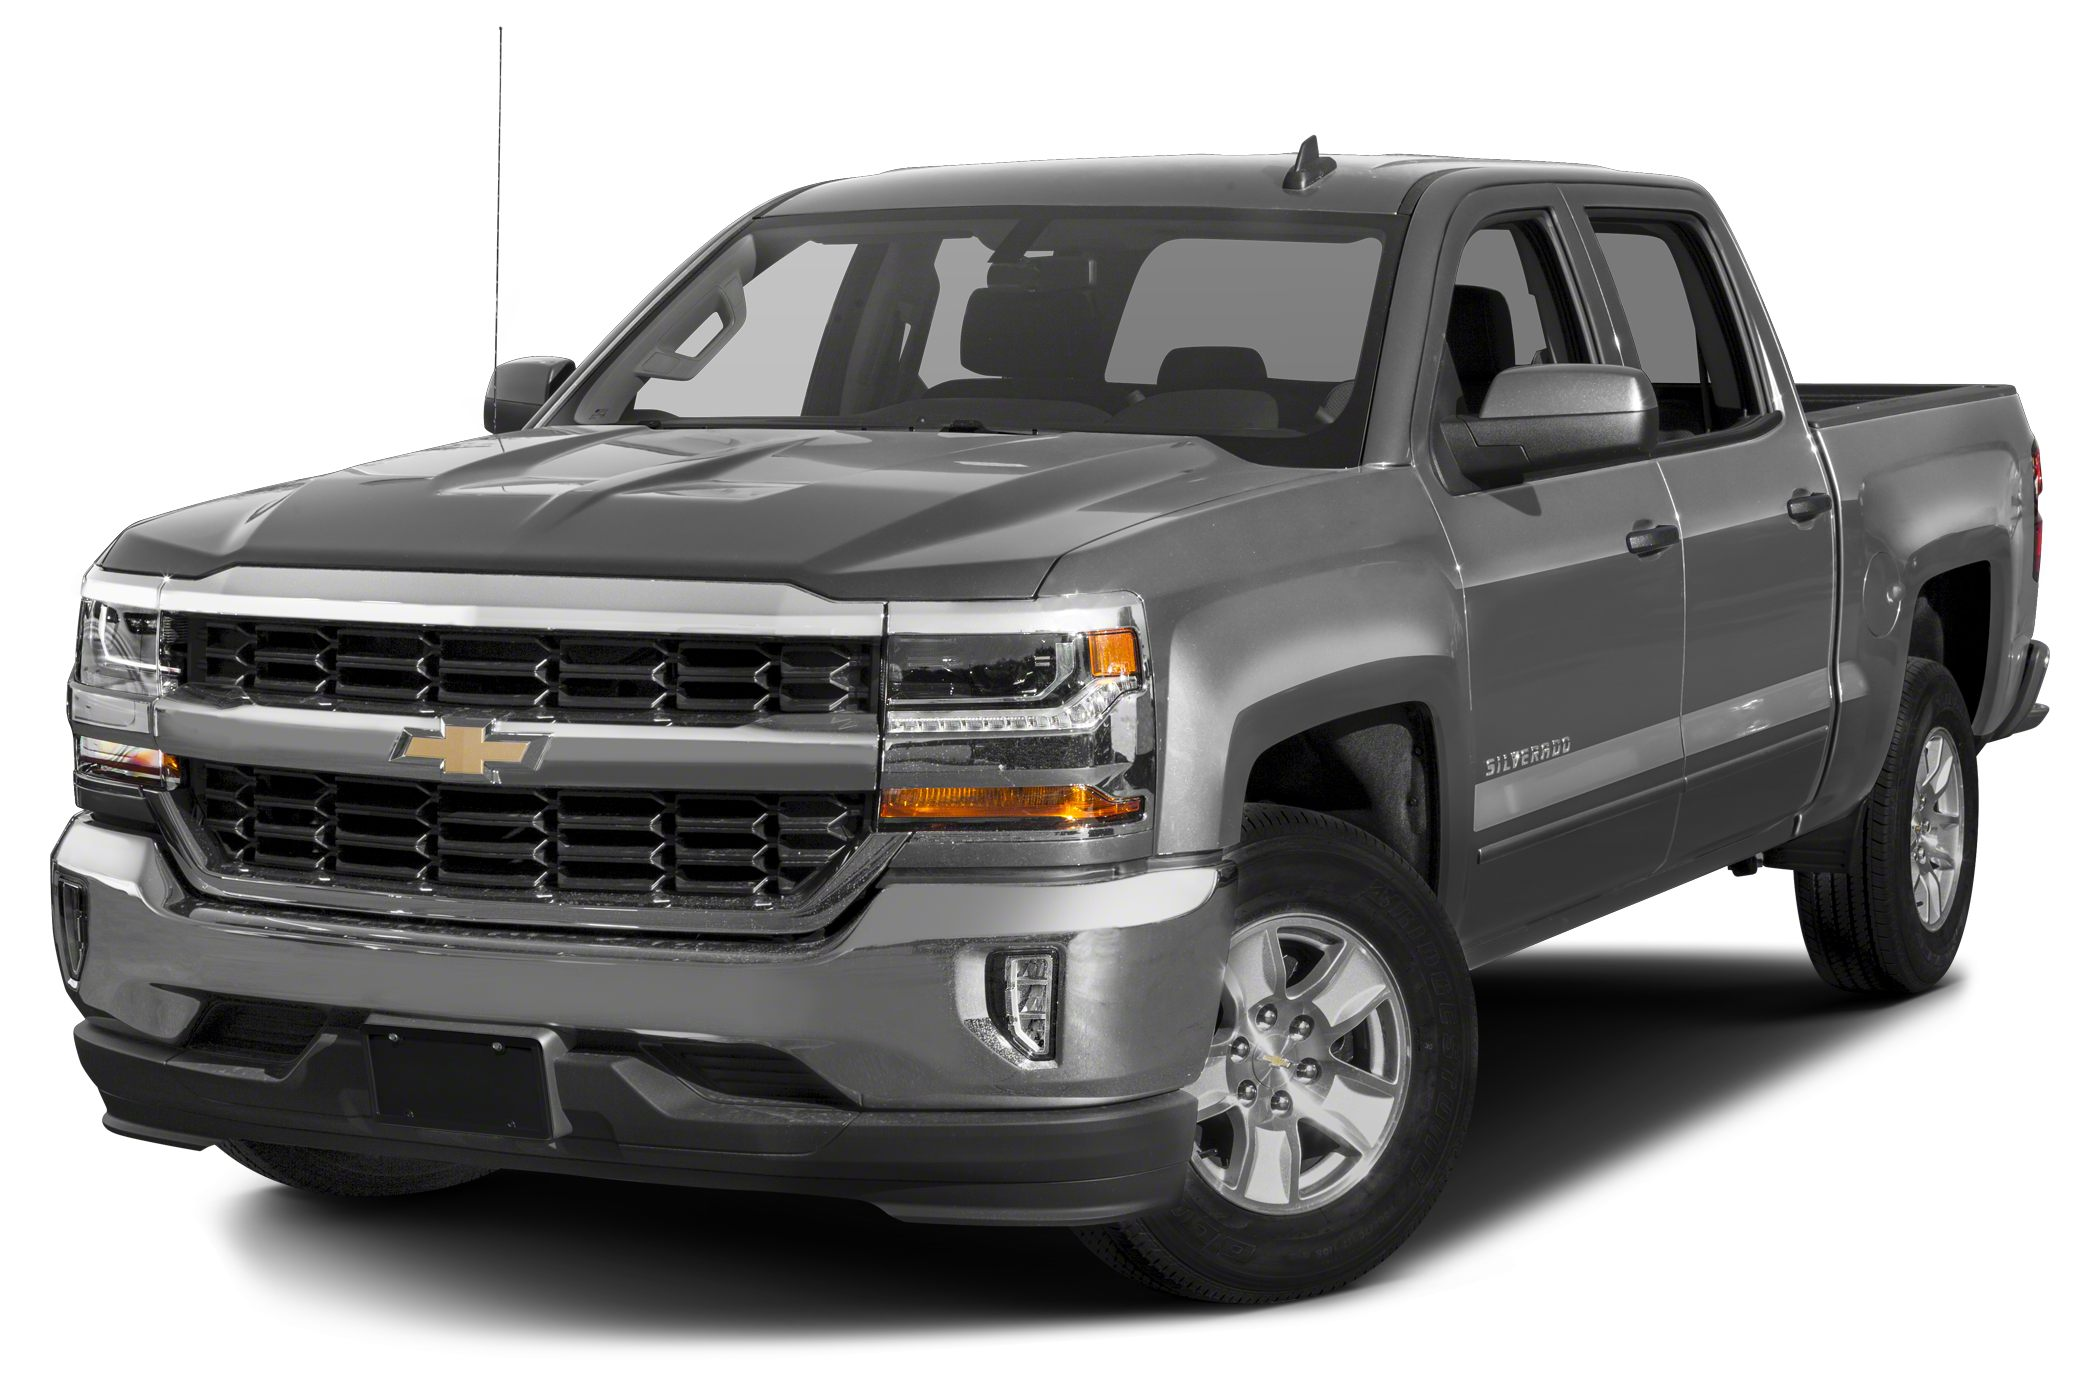 2016 chevrolet silverado 1500 1lt for sale vin 3gcpcrec6gg